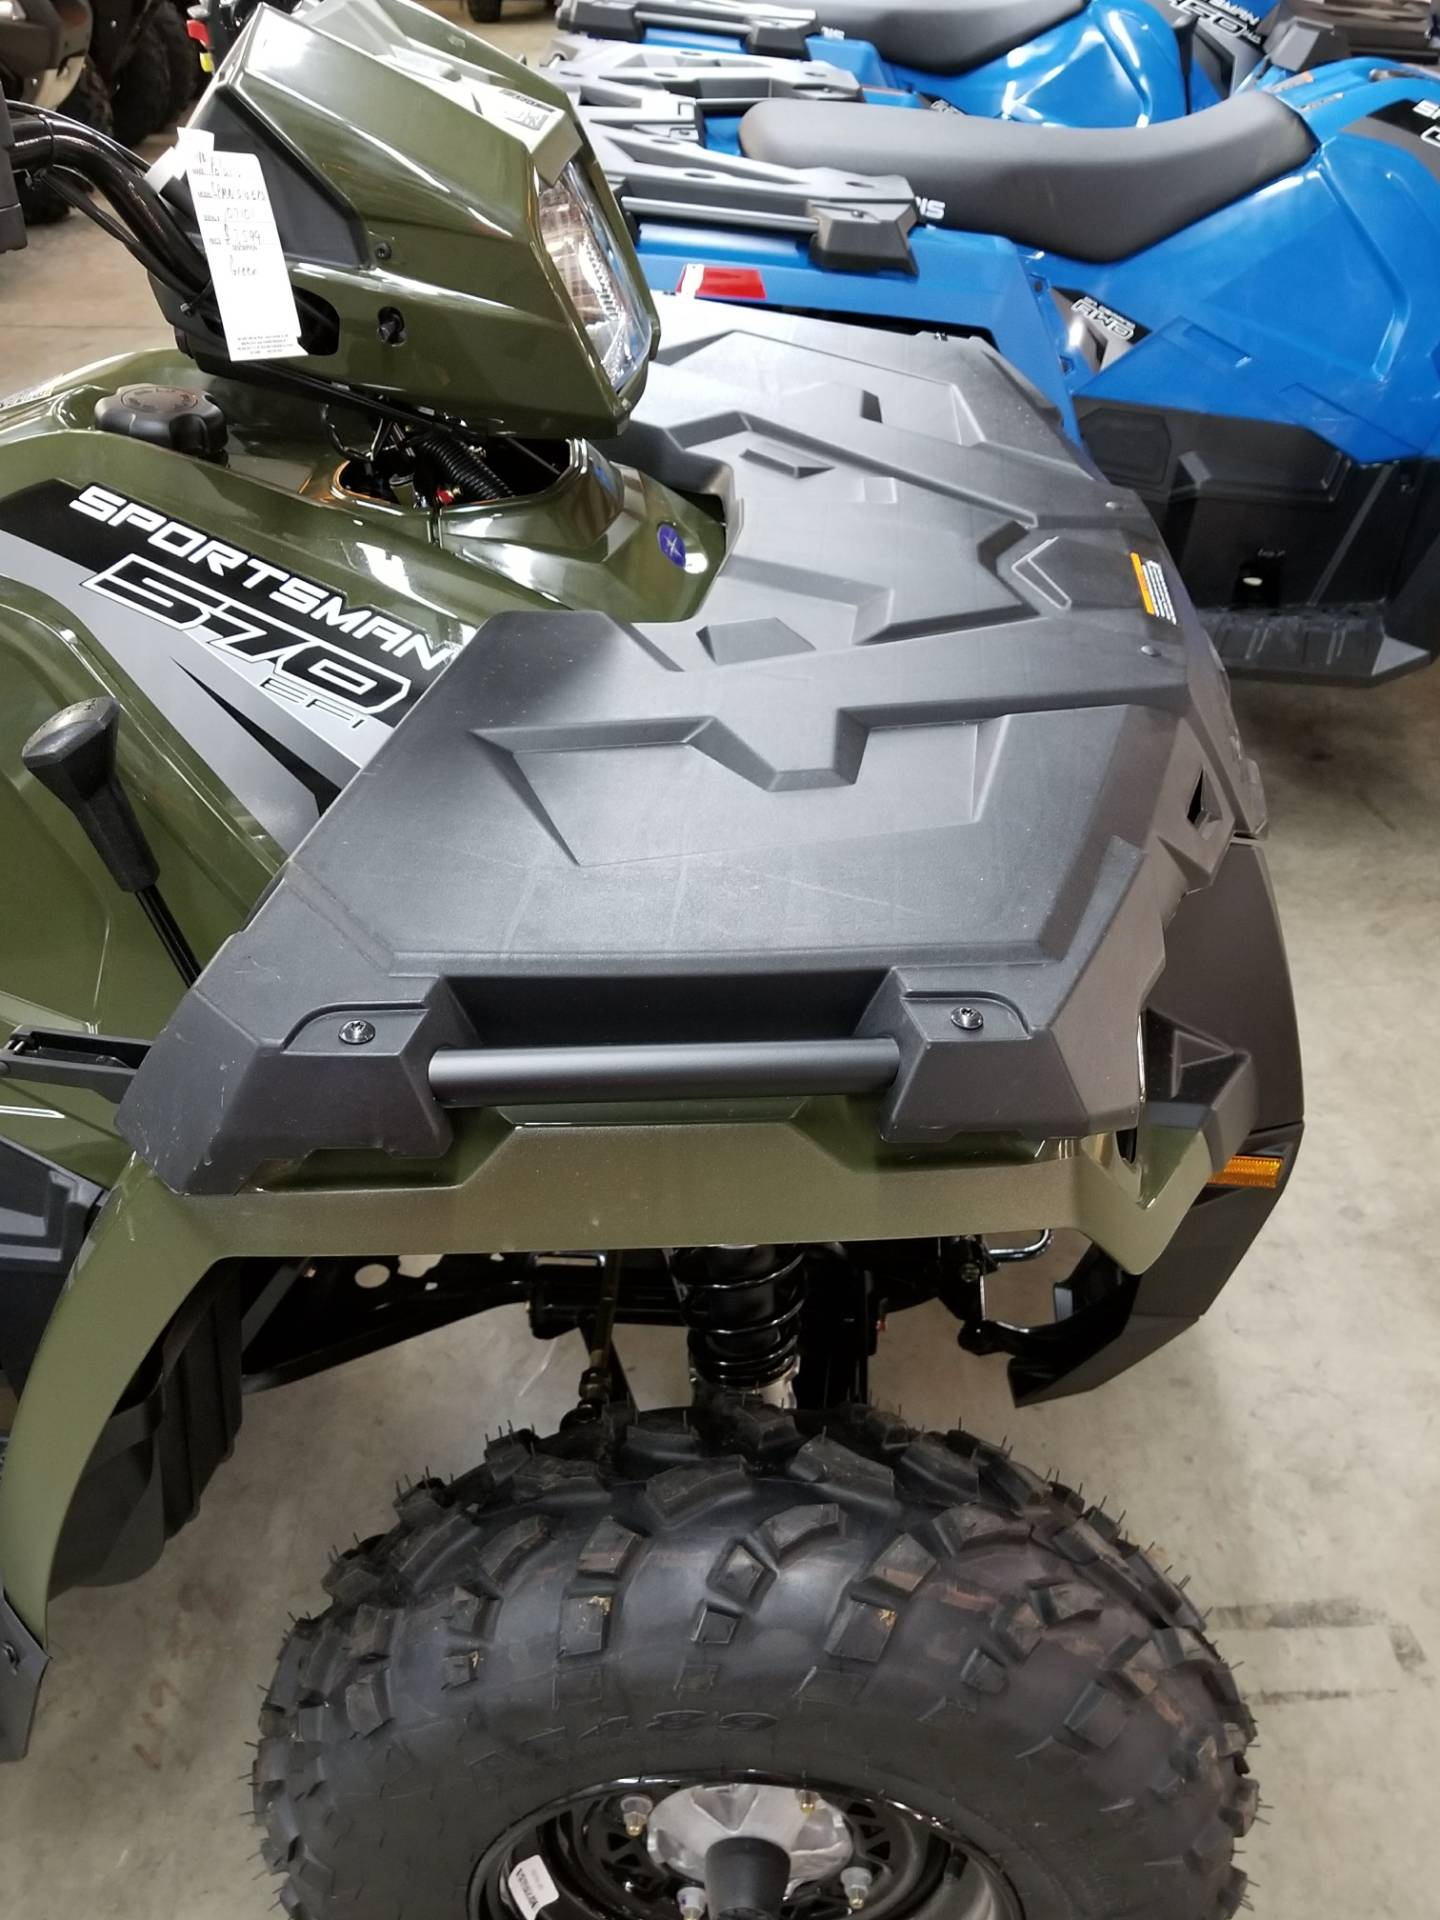 2018 Polaris Sportsman 570 in Statesville, North Carolina